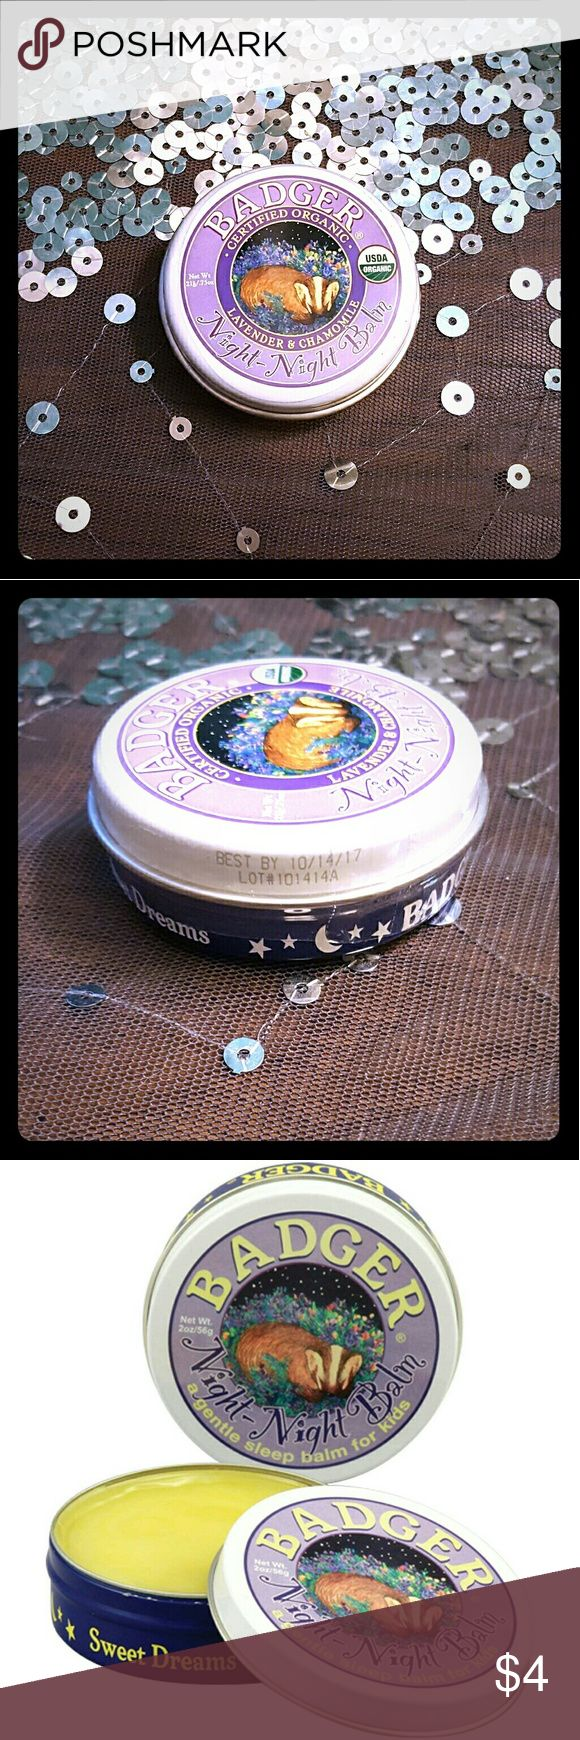 """Organic Lavender & Chamomile """"Night-Night"""" Balm *Travel size organic balm. Still in shrink wrap.  """"A formula specifically designed with children in mind, featuring Chamomile and Lavender essential oils traditionally used to calm and relax.  Great for pre-sleep massage, the scent surrounds and relaxes, helping the child to unwind naturally after a busy day of learning and growing.  Absolutely, positively NO chemicals, synthetics, fragrance, parabens, GMOs, or any other bad stuff."""" Badger…"""